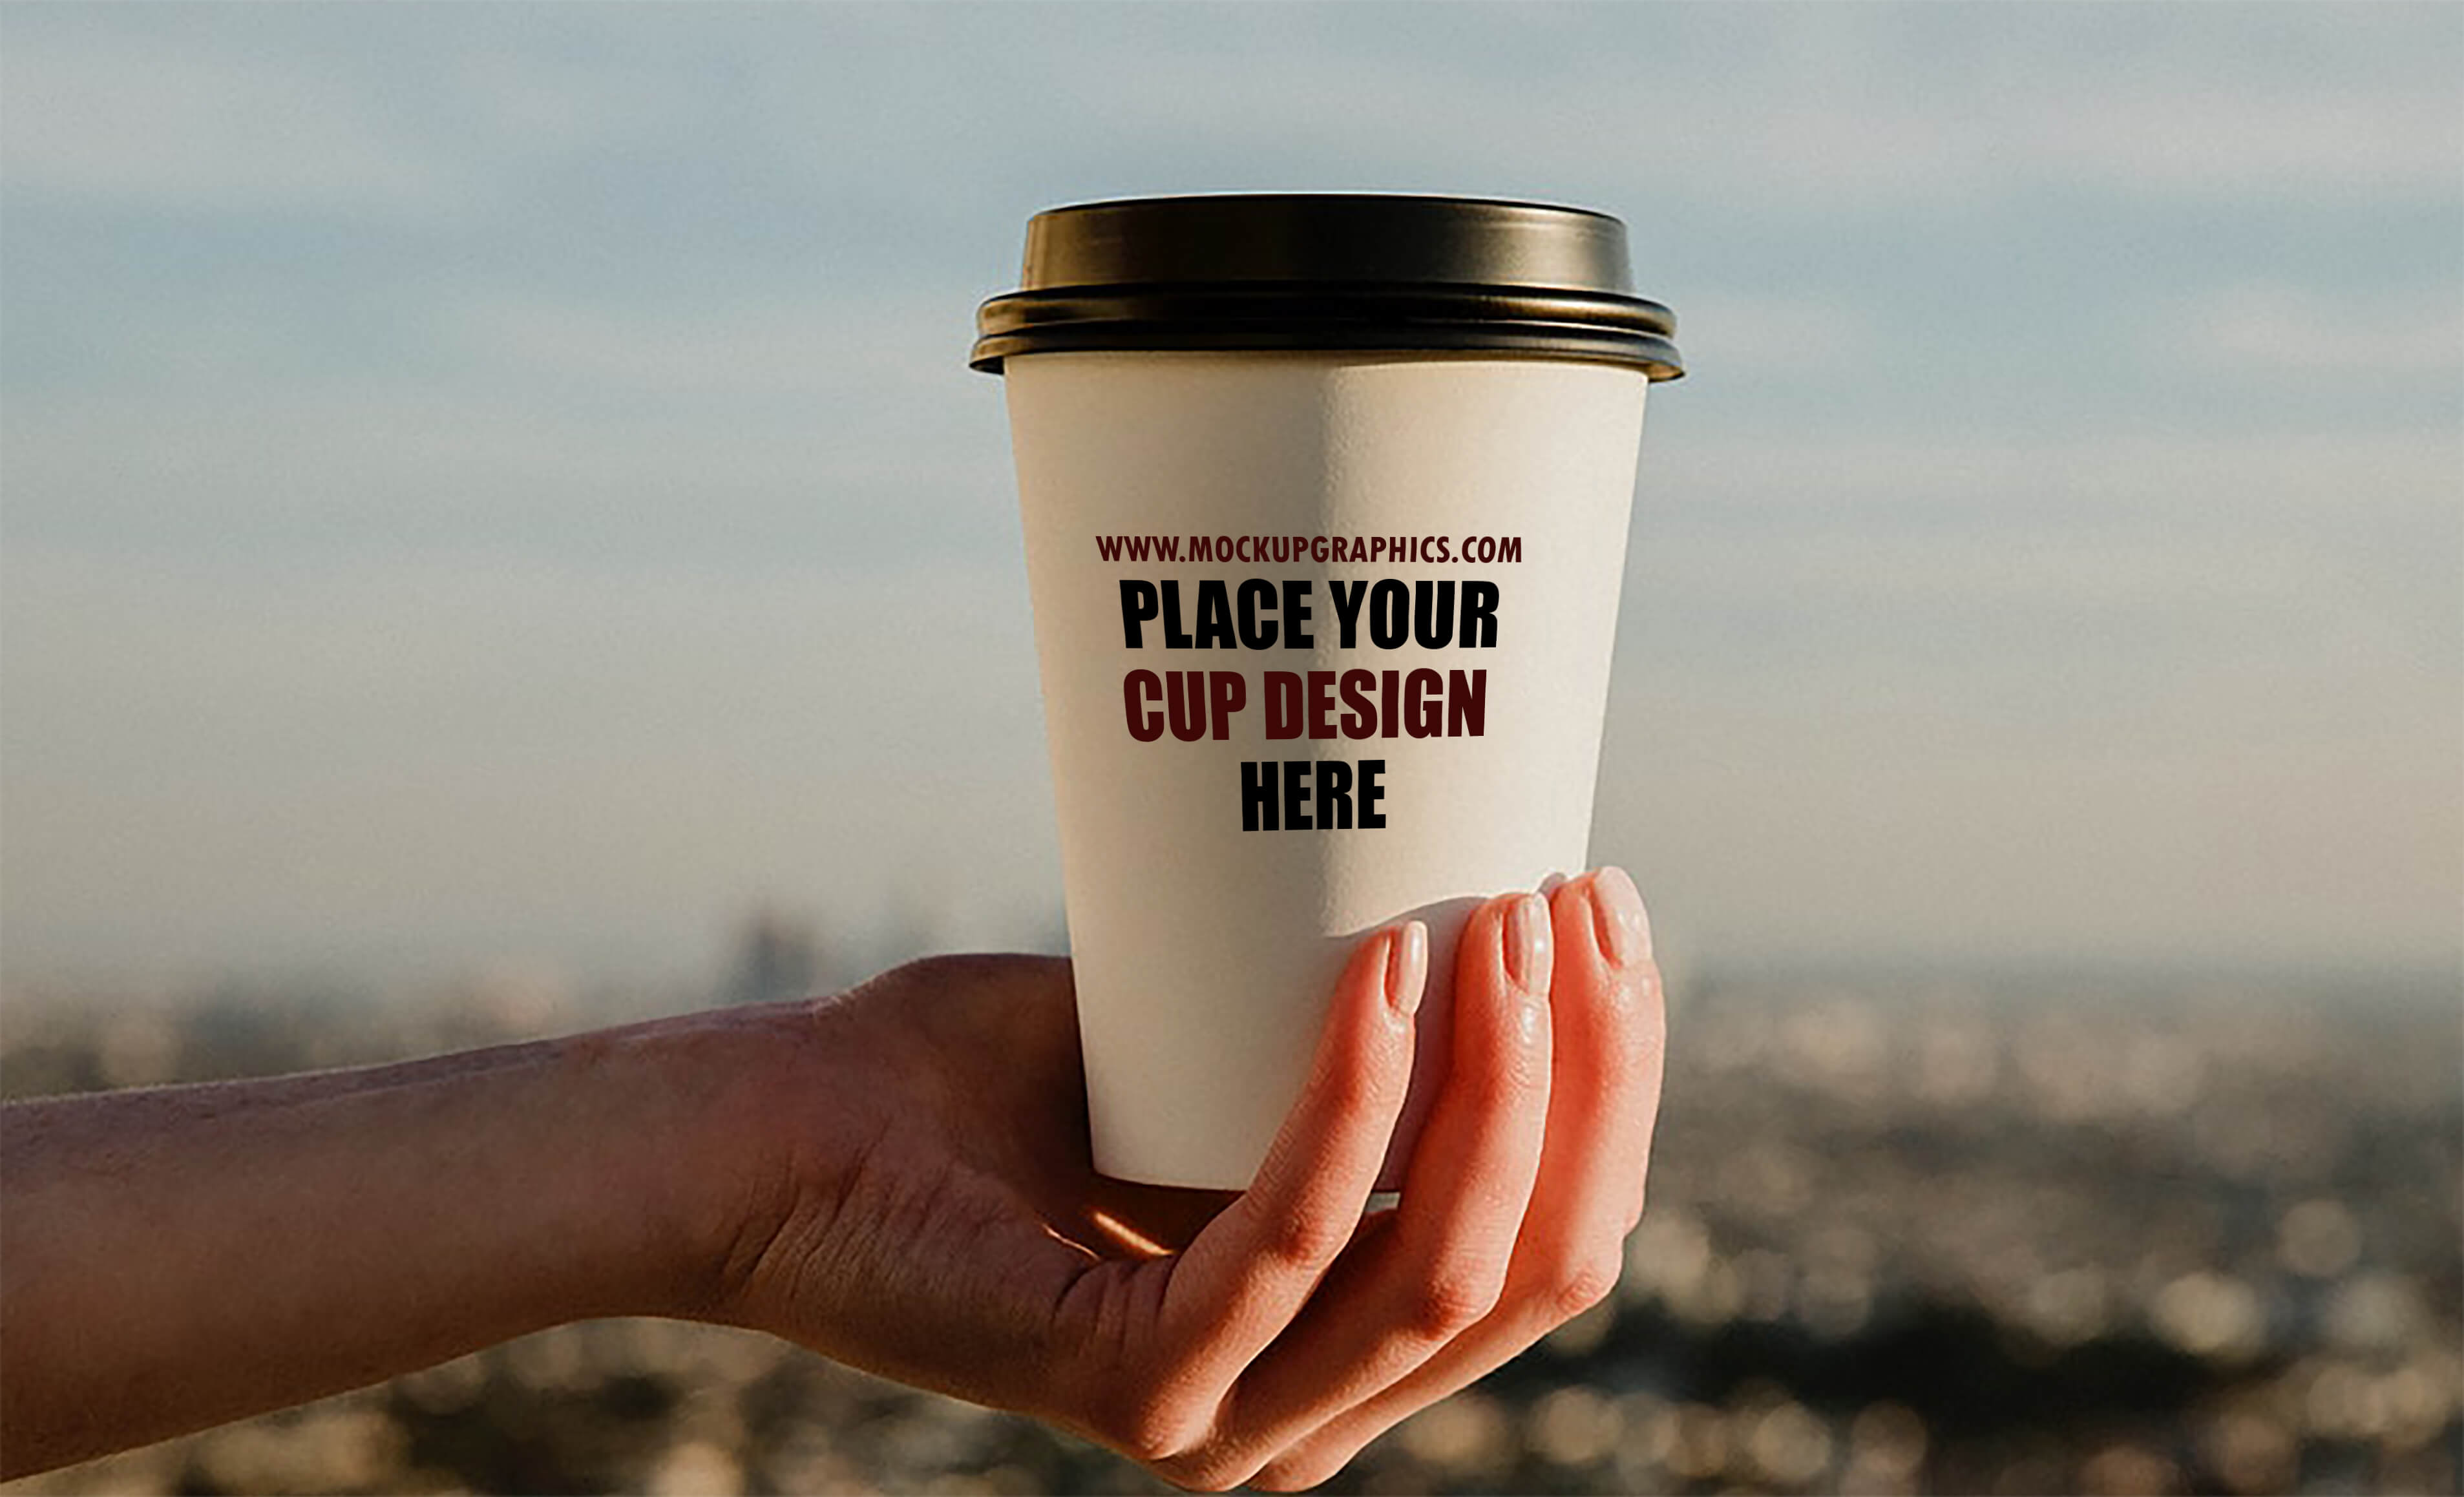 coffee in hand cup mockup - www.mockupgraphics.com